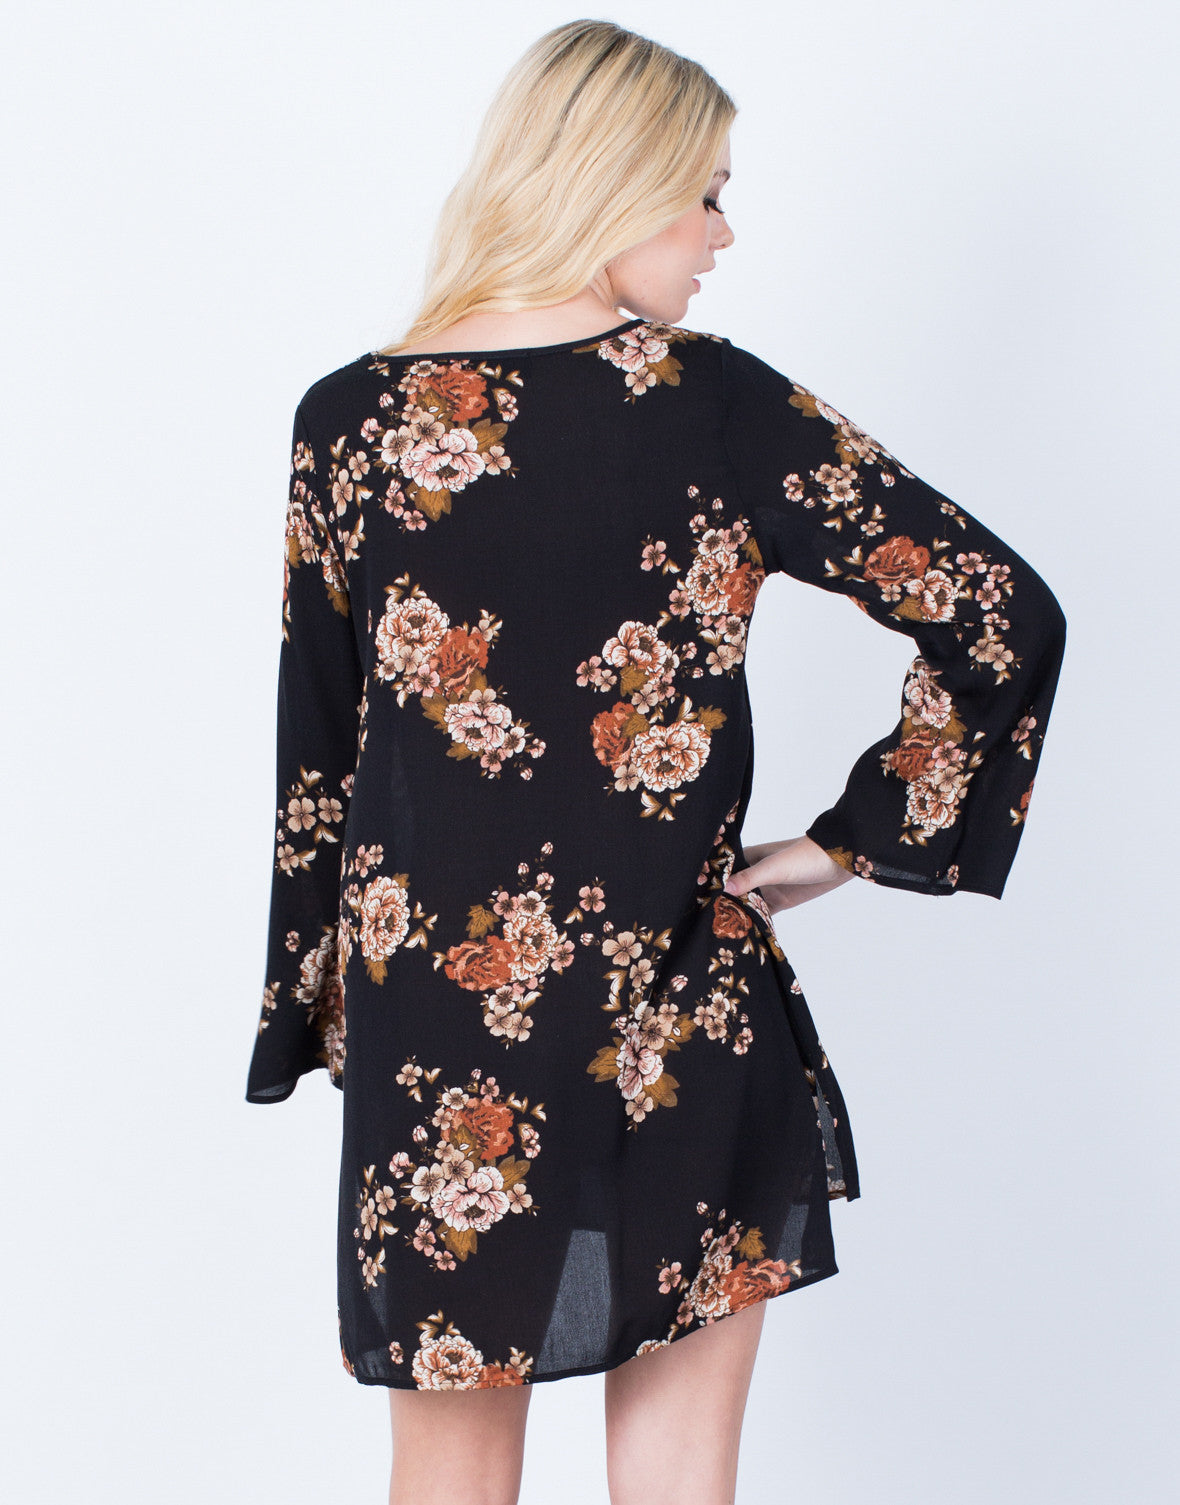 Back View of Flowy Autumn Floral Dress